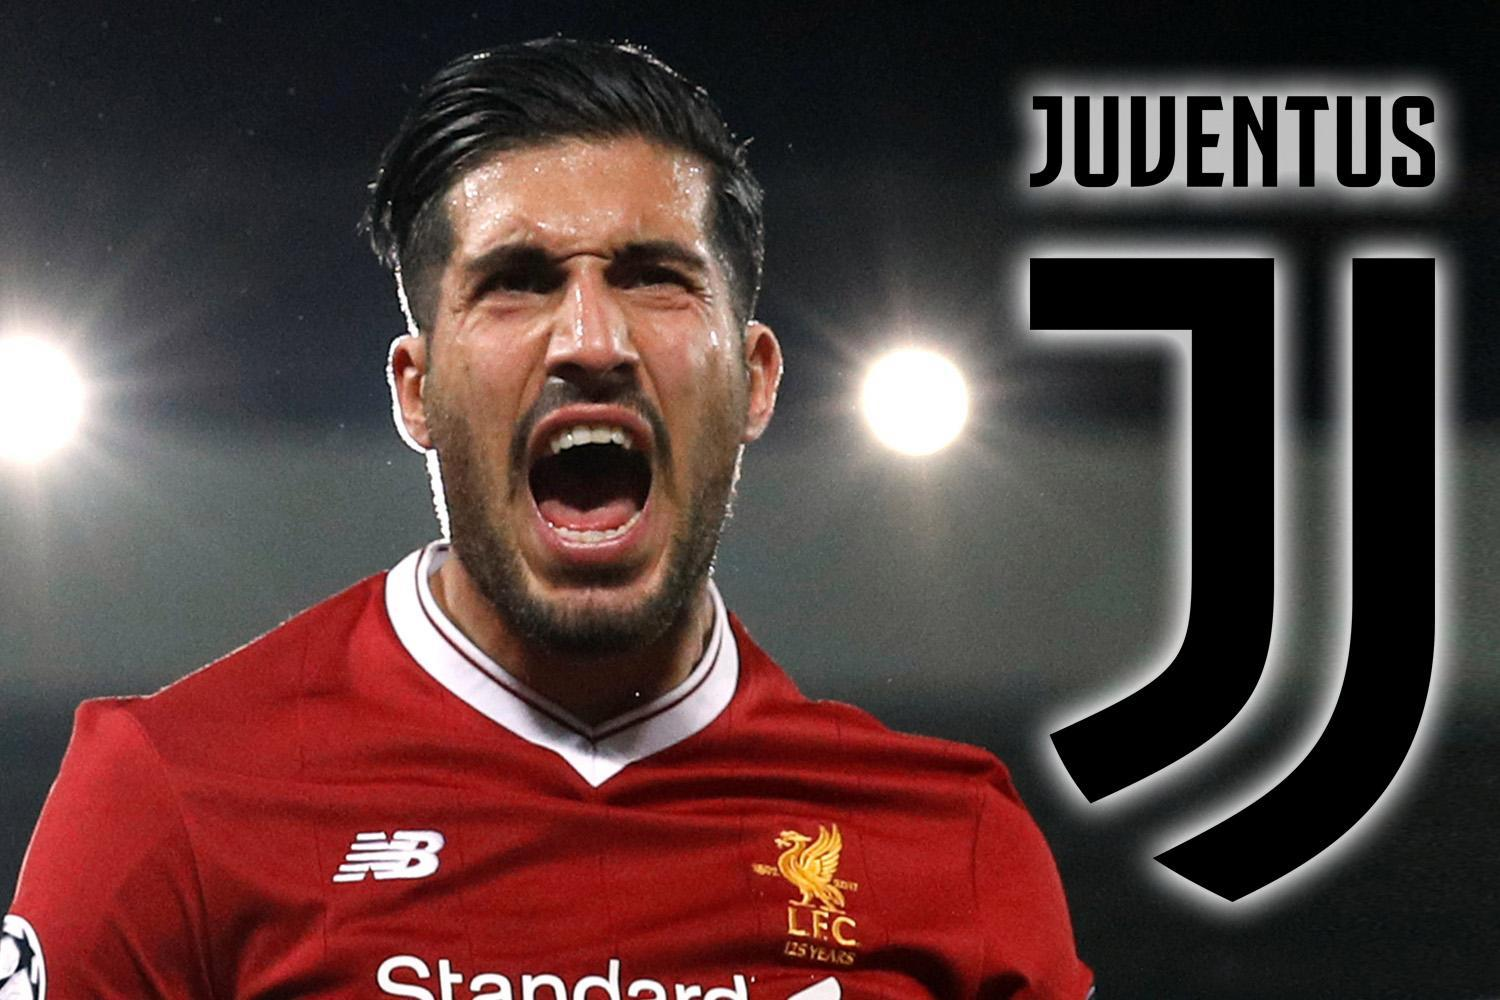 Emre Can's Juventus free transfer from Liverpool is a done deal, according to top football agent who is friends with Antonio Conte